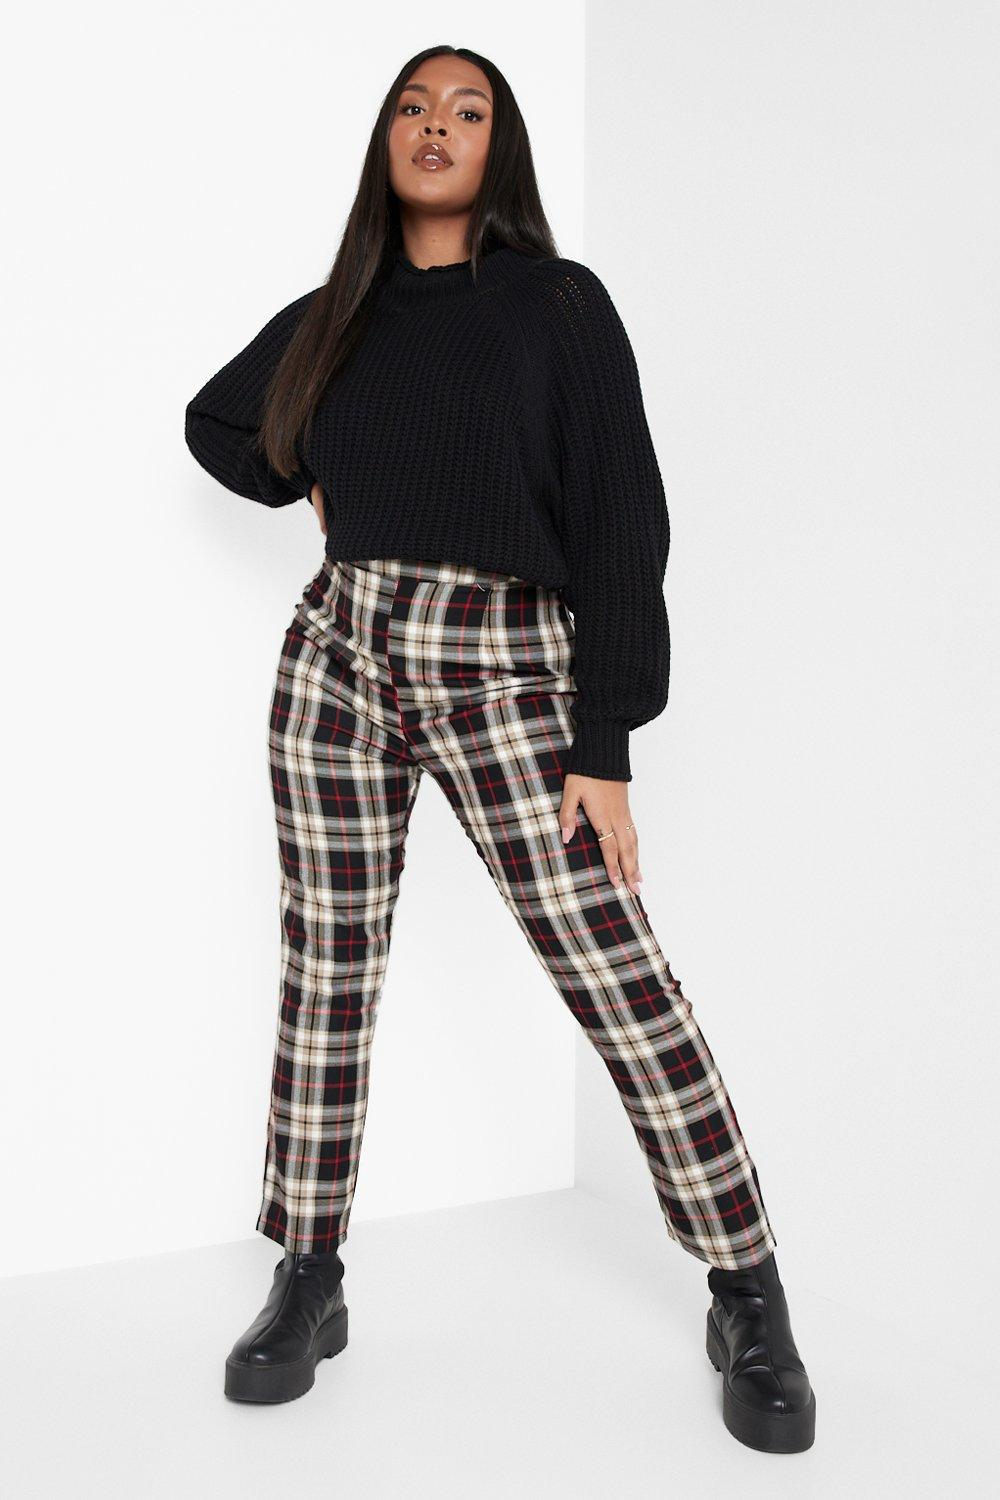 Vintage High Waisted Trousers, Sailor Pants, Jeans Womens Plus Woven Flannel Tapered Pants - Black - 16 $16.80 AT vintagedancer.com